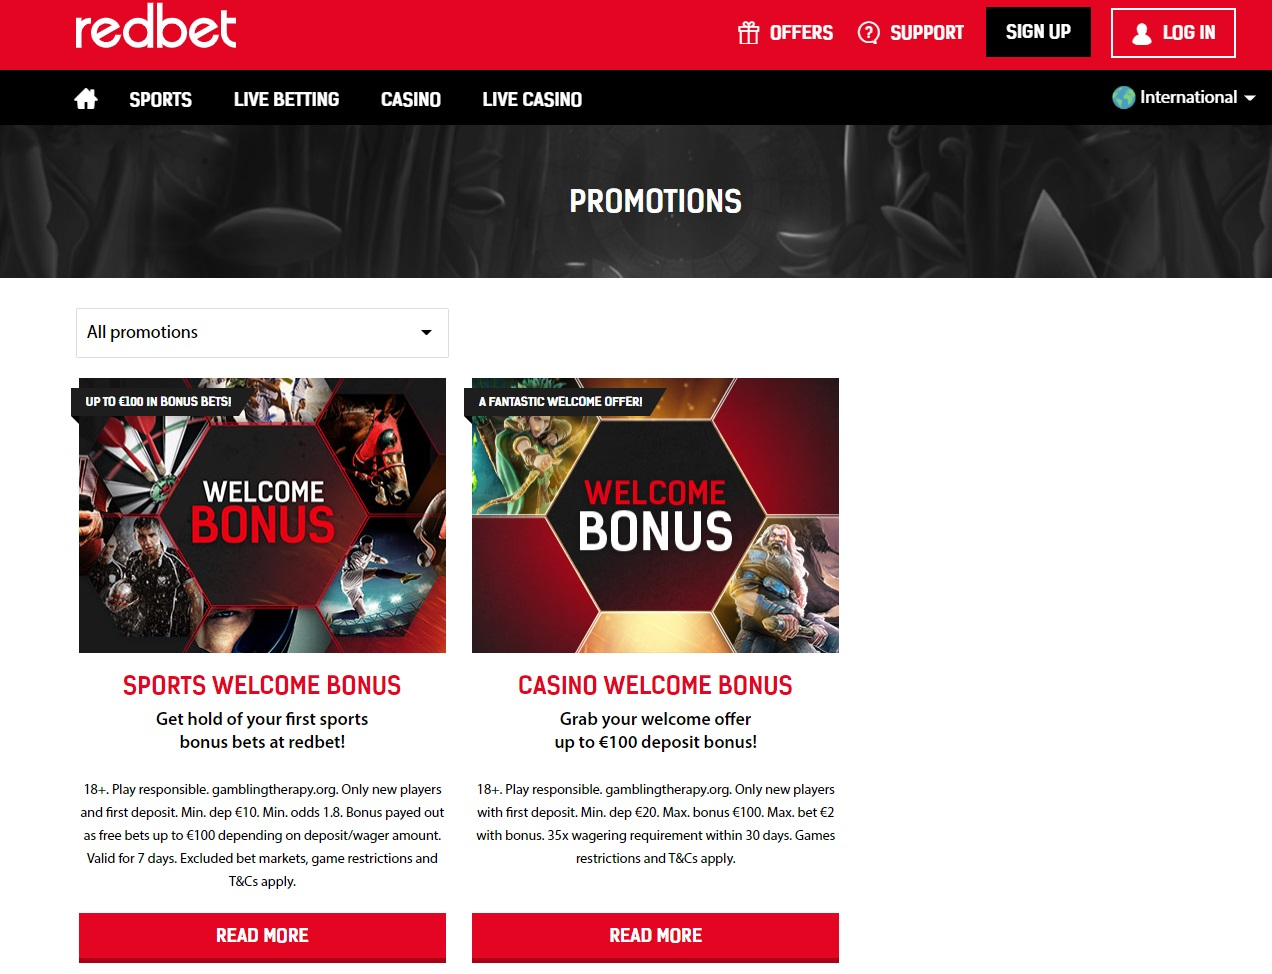 RedBet Promotions and bonuses